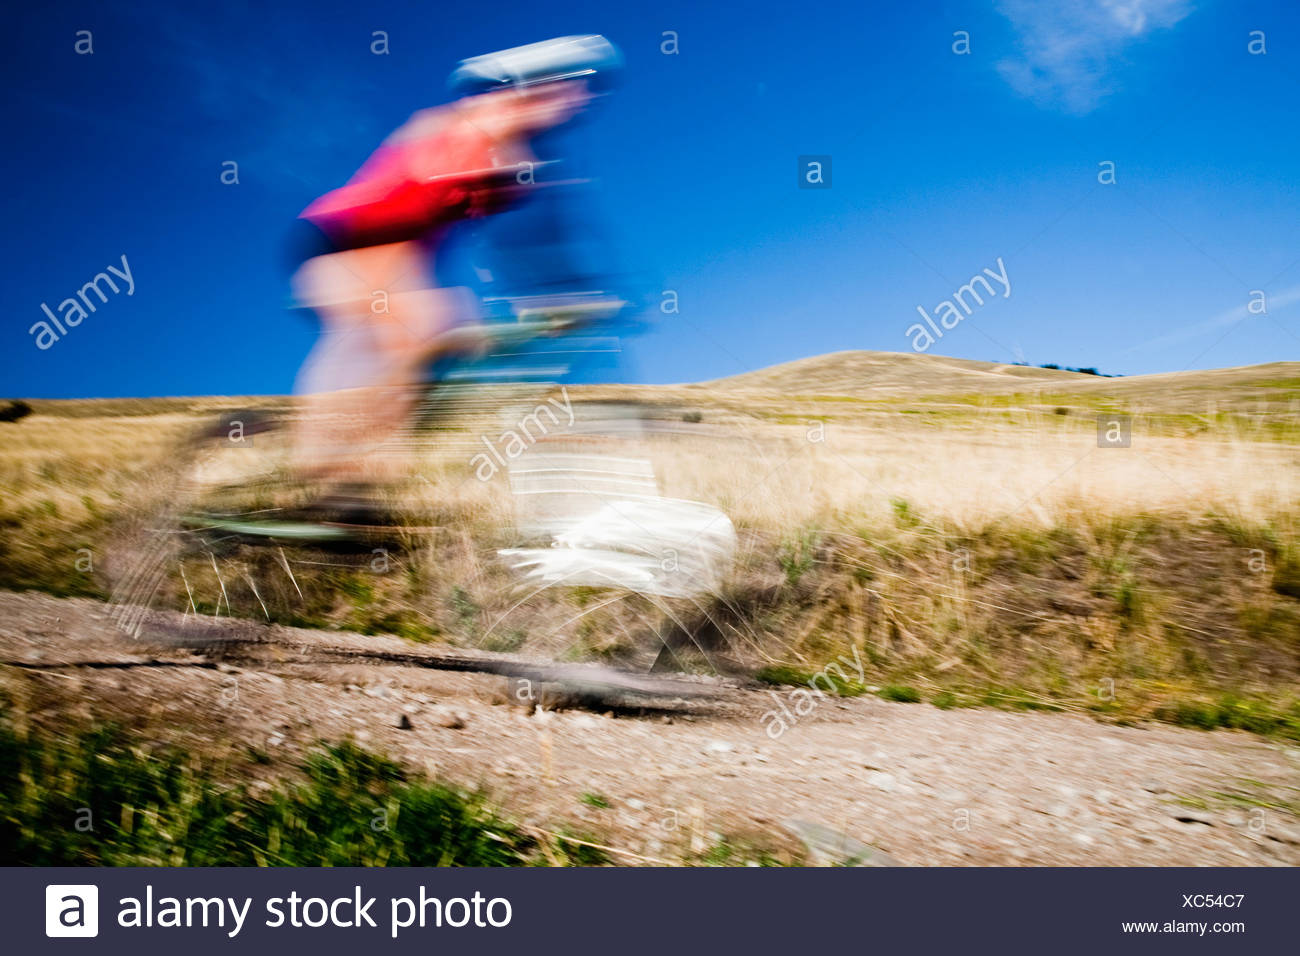 A female mountain biker pedals the trail on Mt. Sentinel, Missoula, Montana. - Stock Image